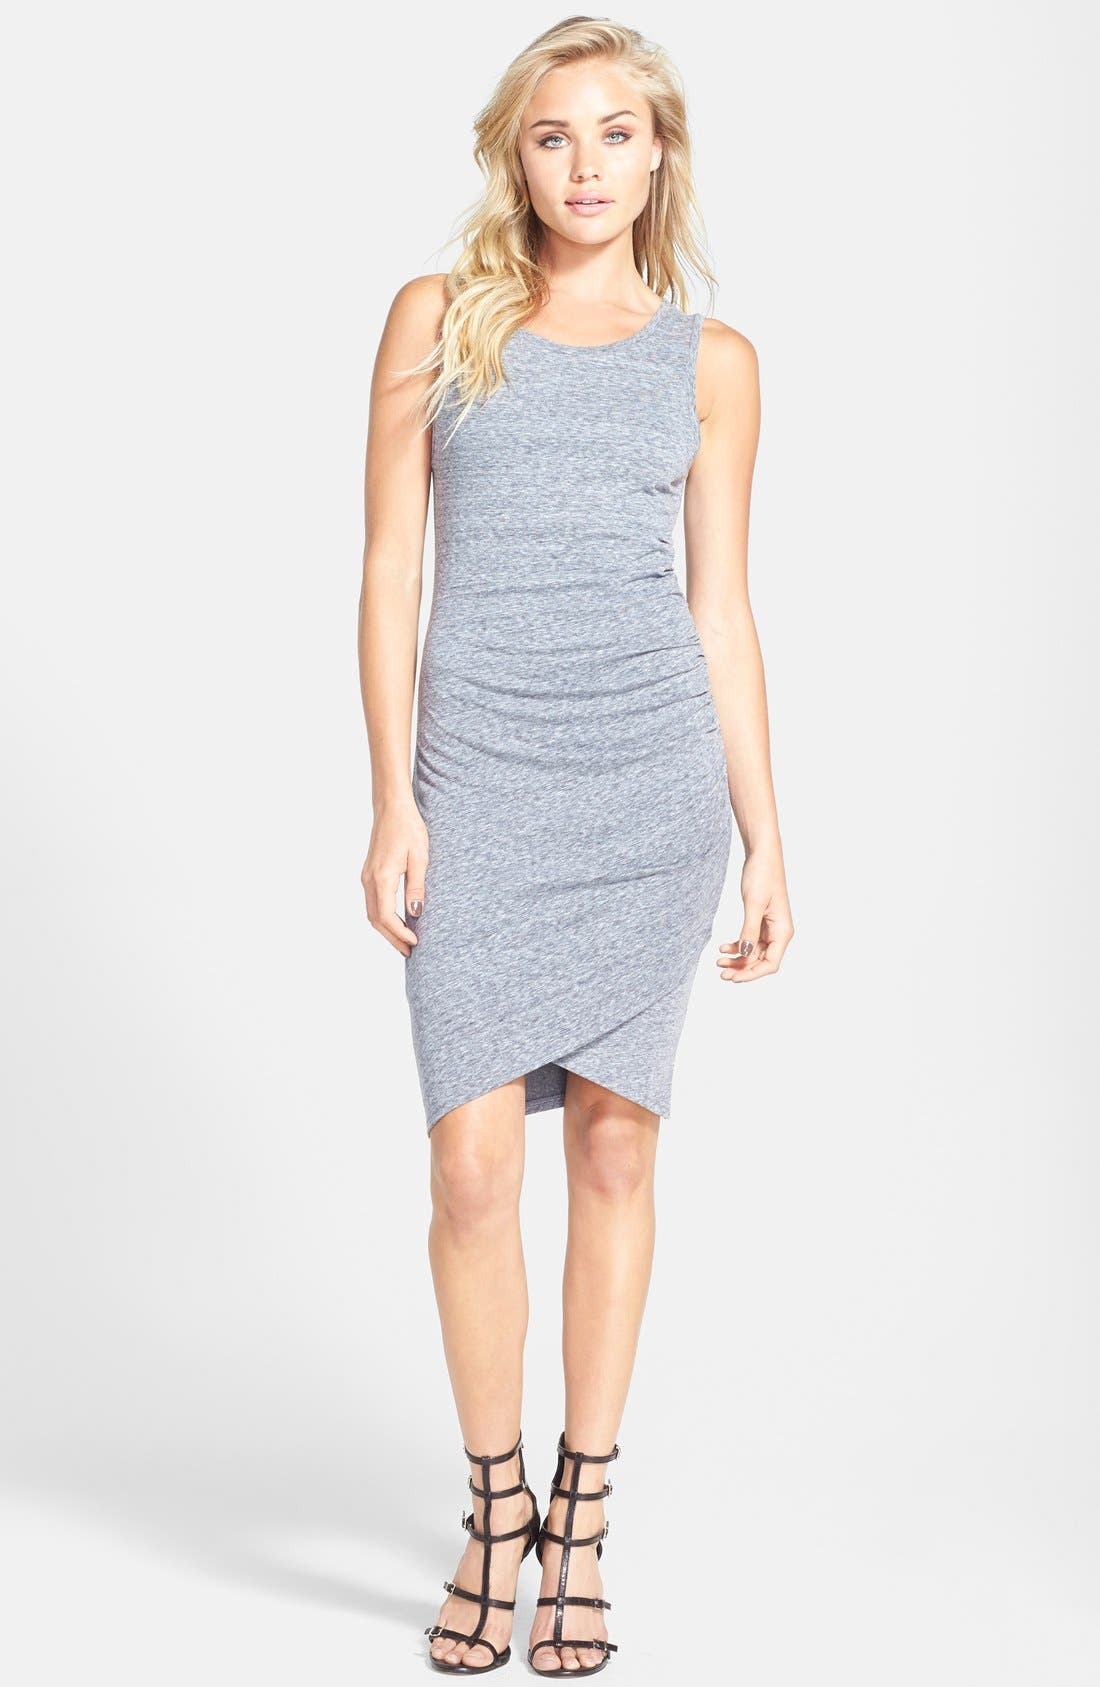 Womens cotton blend dresses nordstrom ombrellifo Image collections